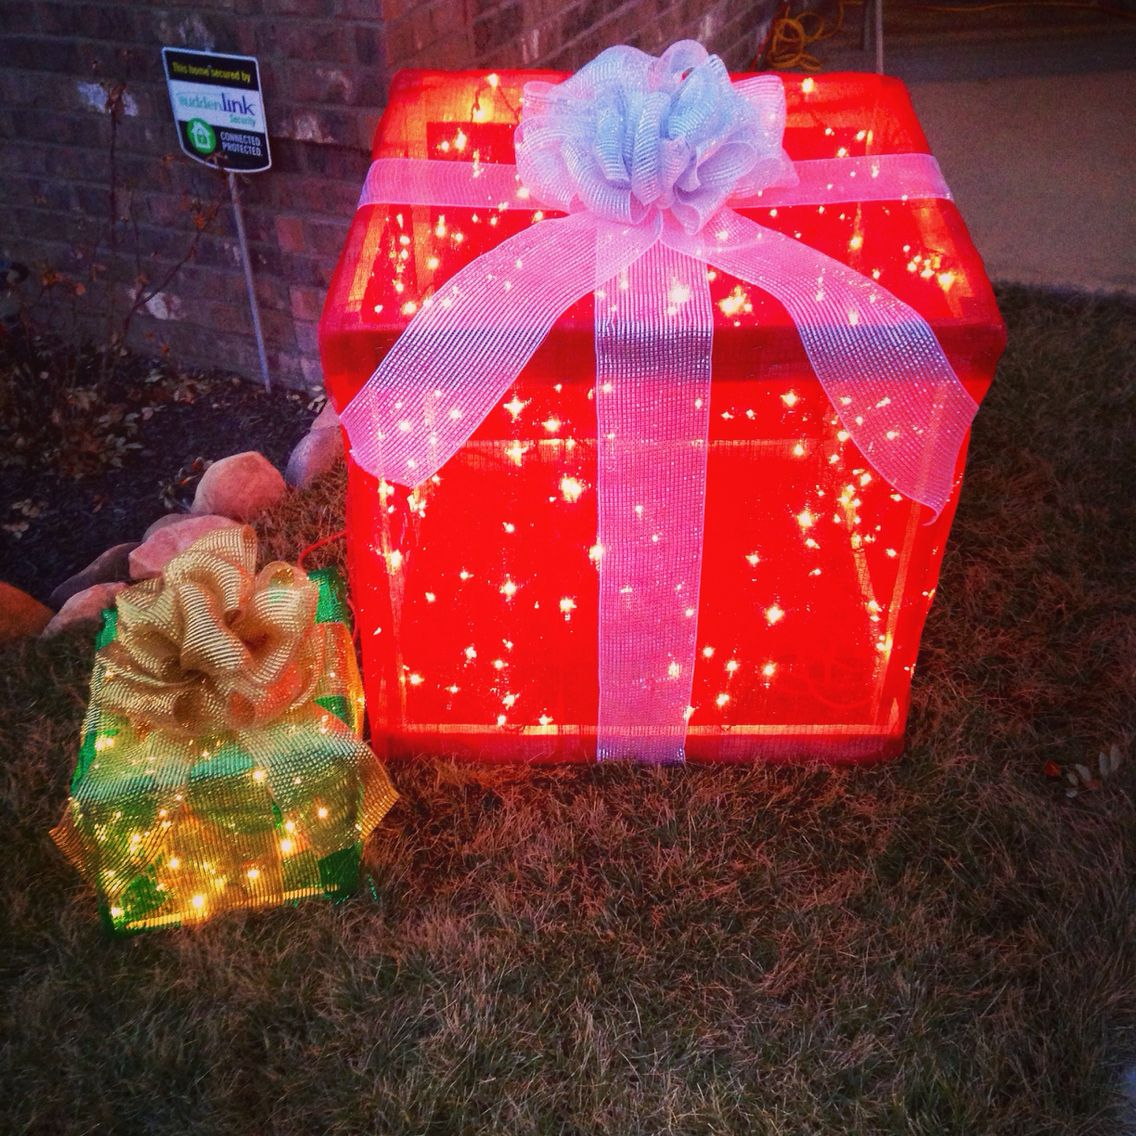 Our Diy Light Up Christmas Presents My Hubby Created The